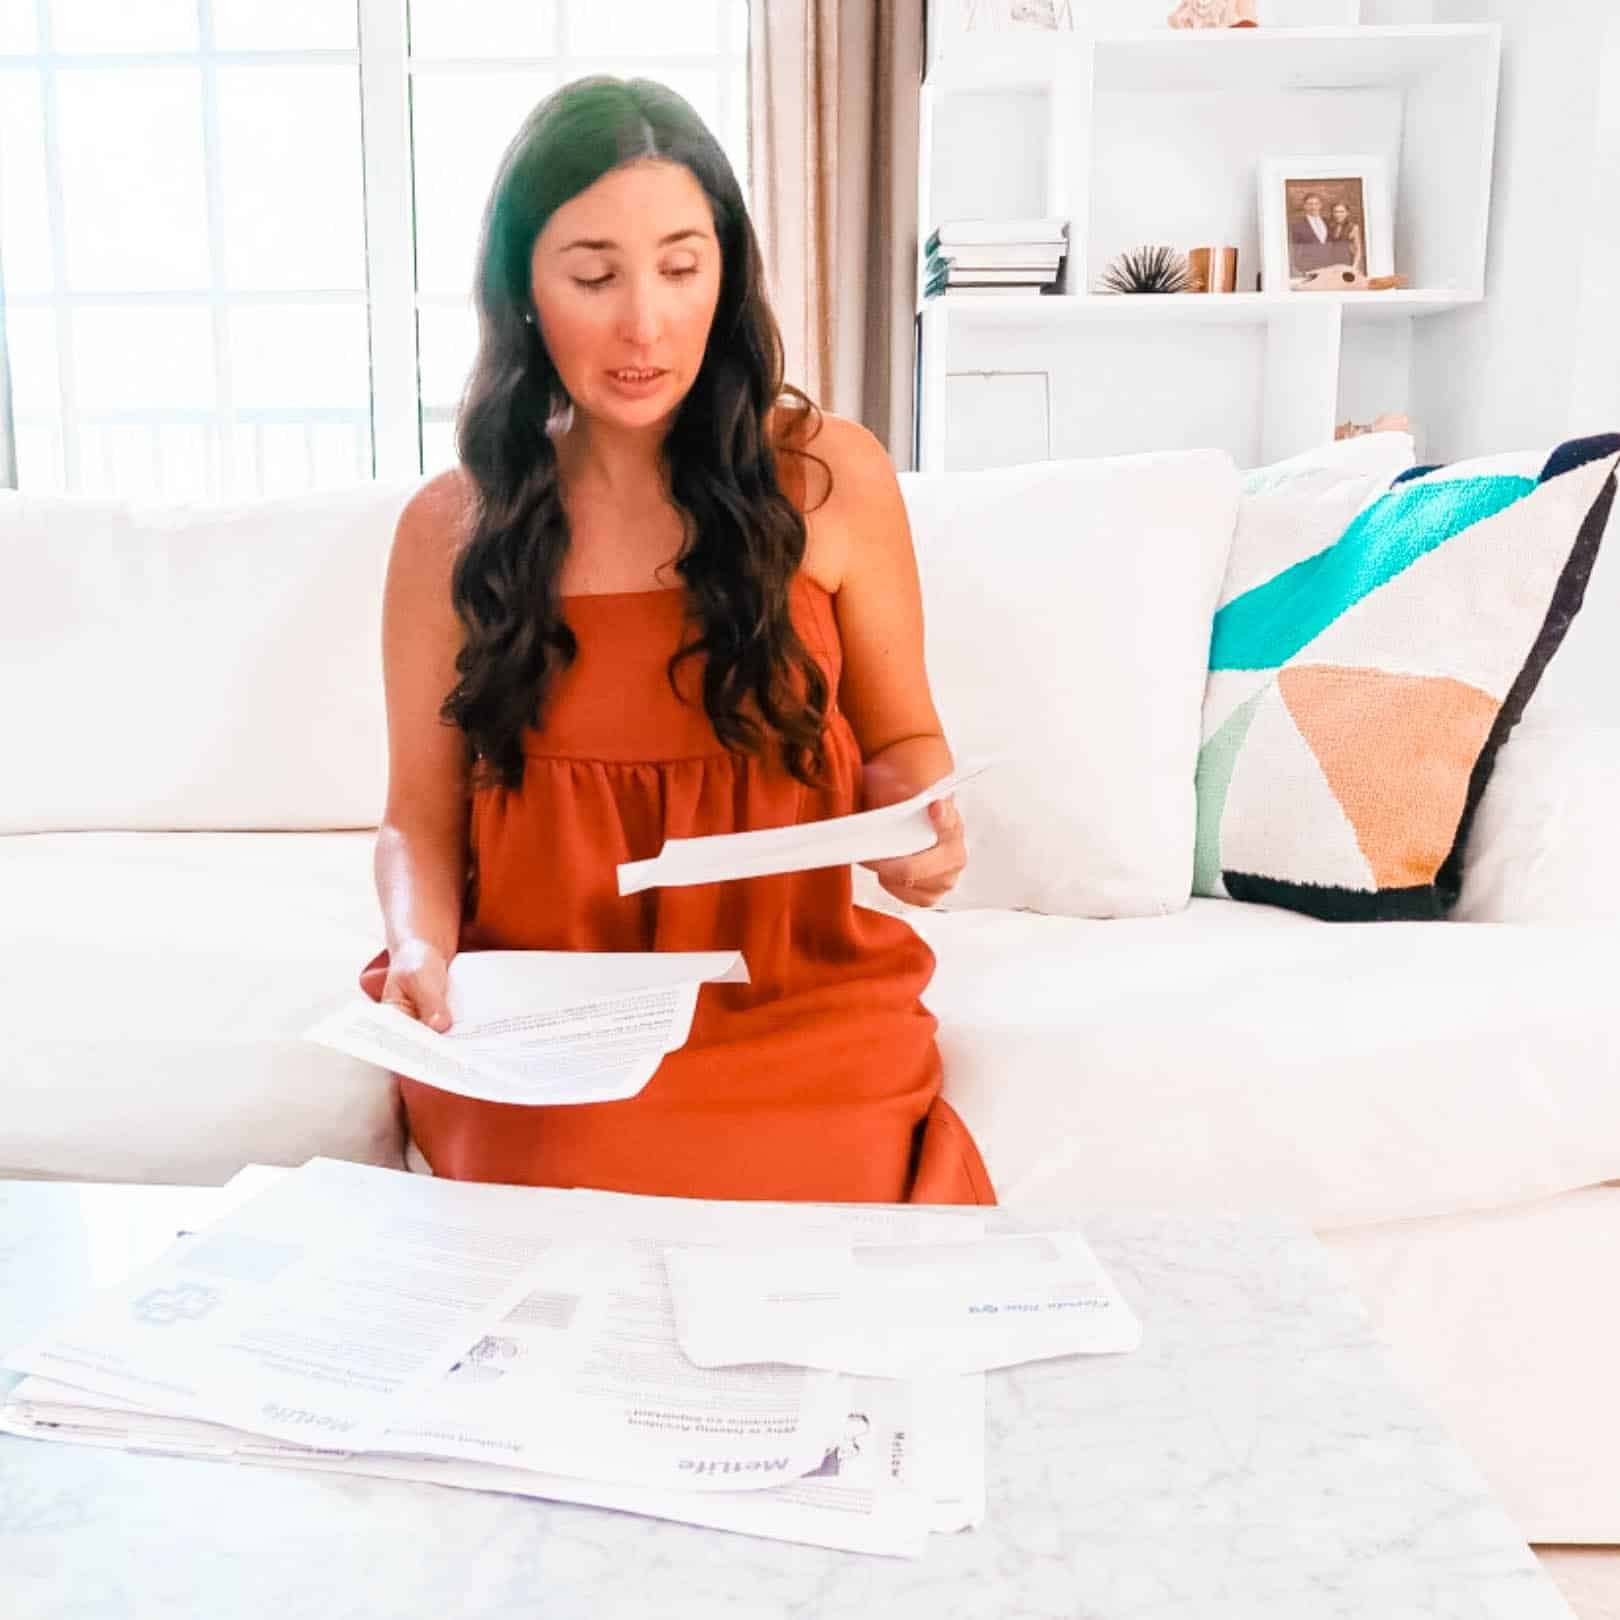 7 Of The Biggest Mistakes I See New Solopreneurs Make, tips for building a successful business as a solopreneur entrepreneur that makes money on social media and beyond, career advice for people, #solopreneur, #entrepreneur, #businesssuccess, #careeradvice